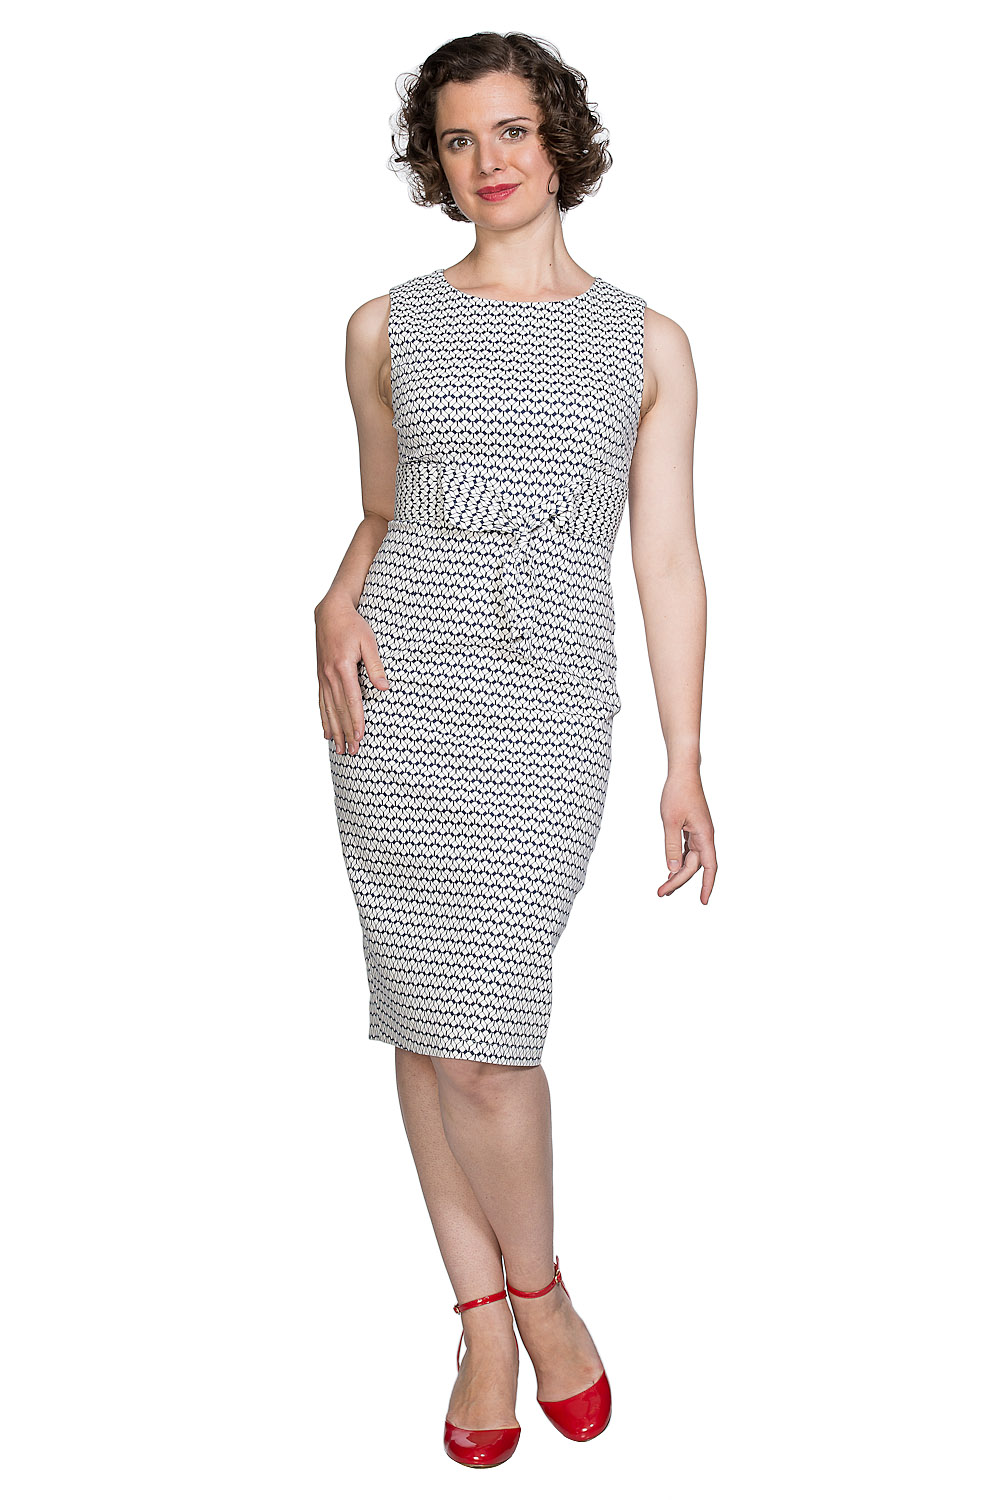 Banned Retro Sexy 60s Tile Wiggle Dress in Navy